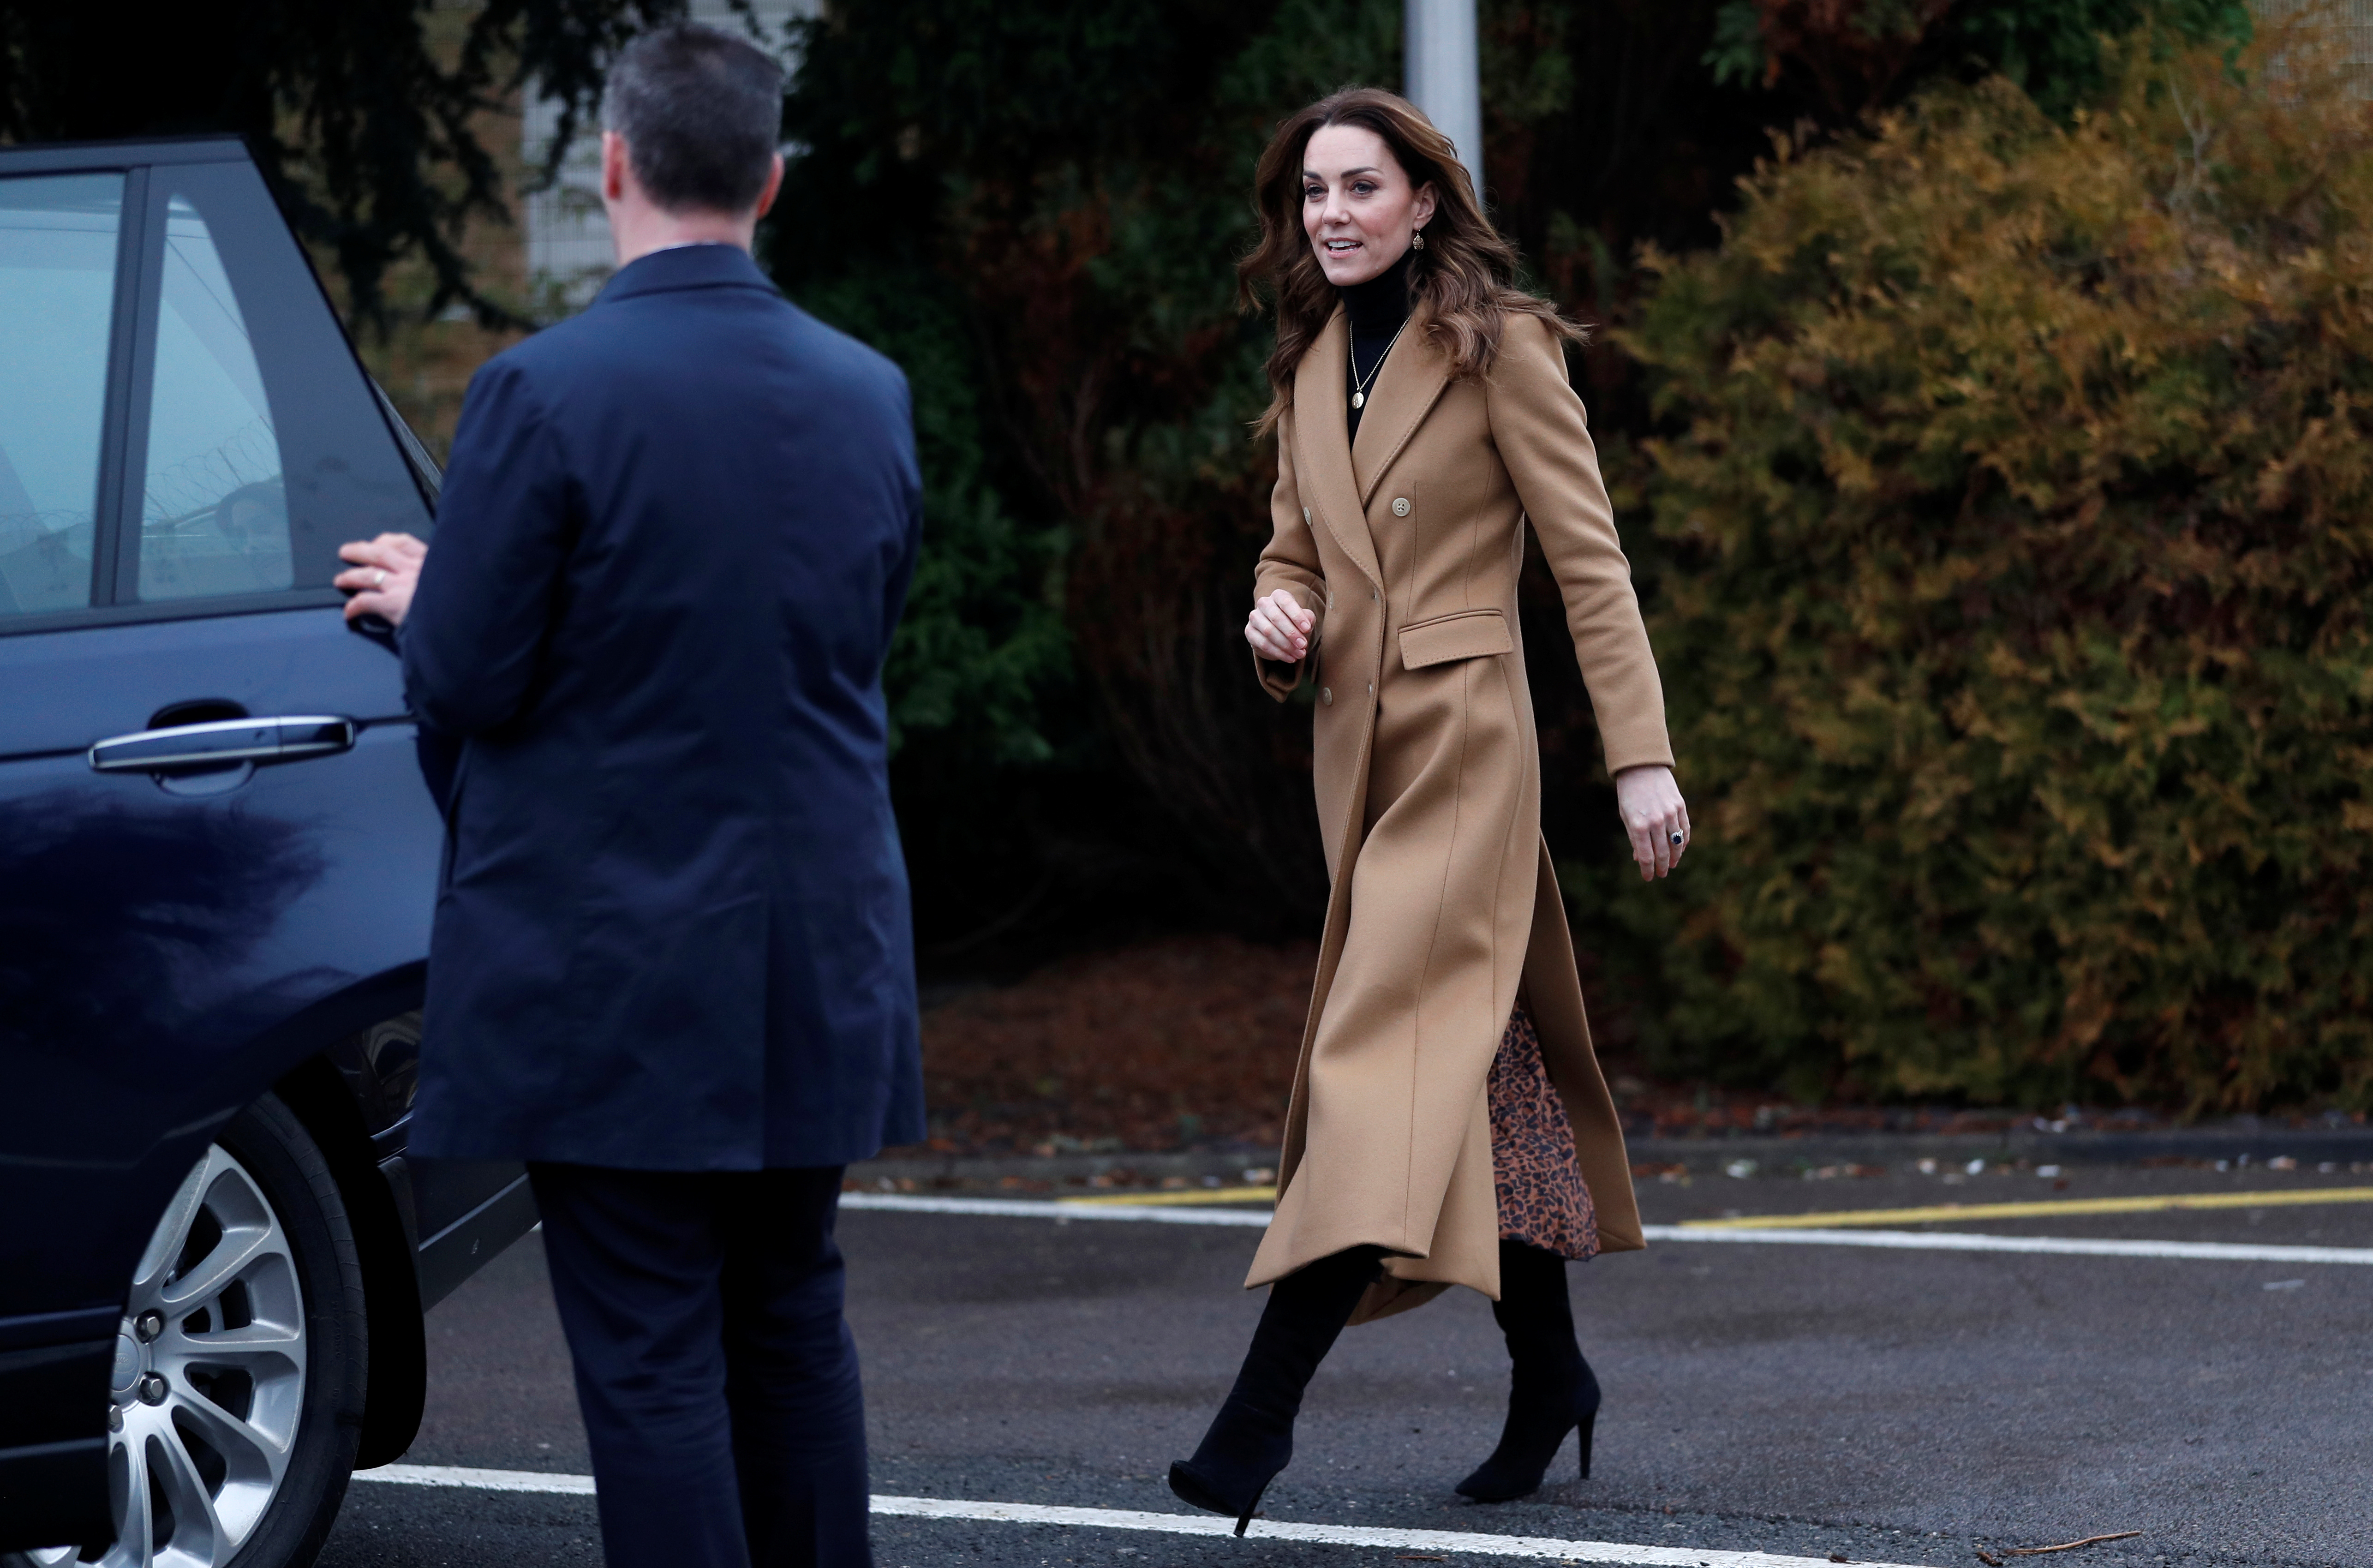 Britain's Catherine, Duchess of Cambridge, leaves after a visit to HMP Send in Woking, Britain, January 22, 2020. REUTERS/Peter Nicholls